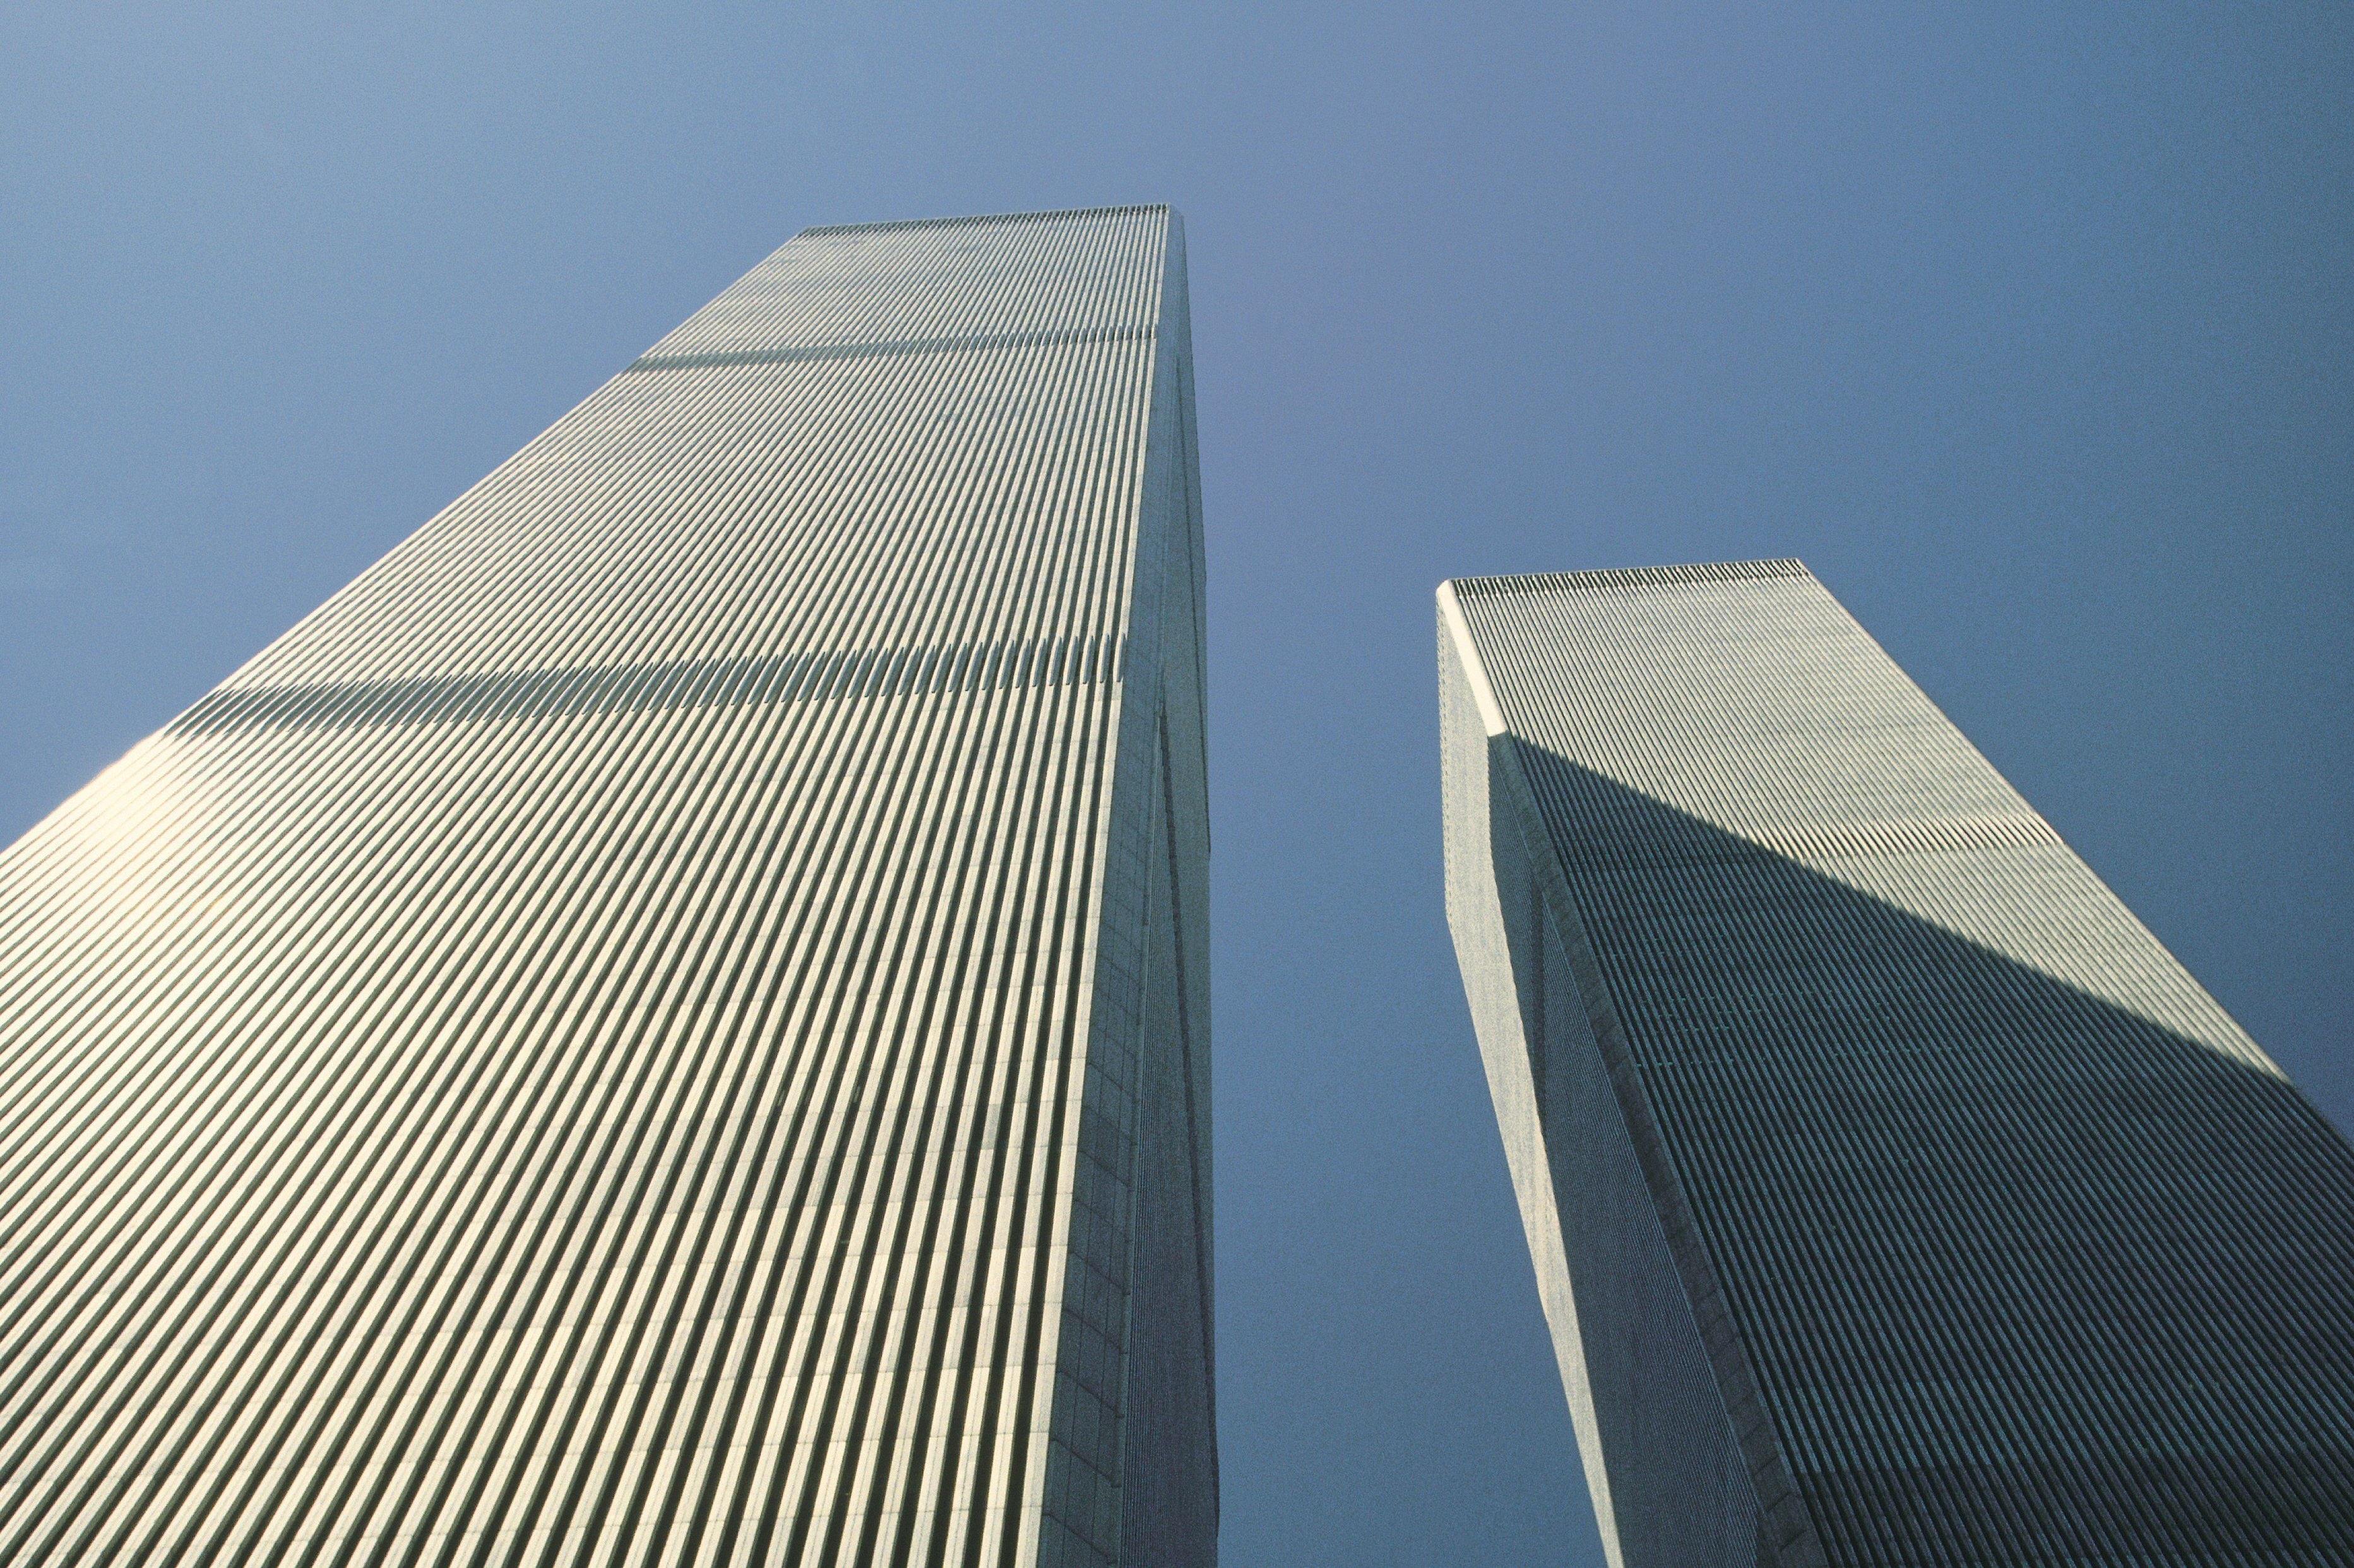 low-angle view of two rectangular skyscrapers near each other